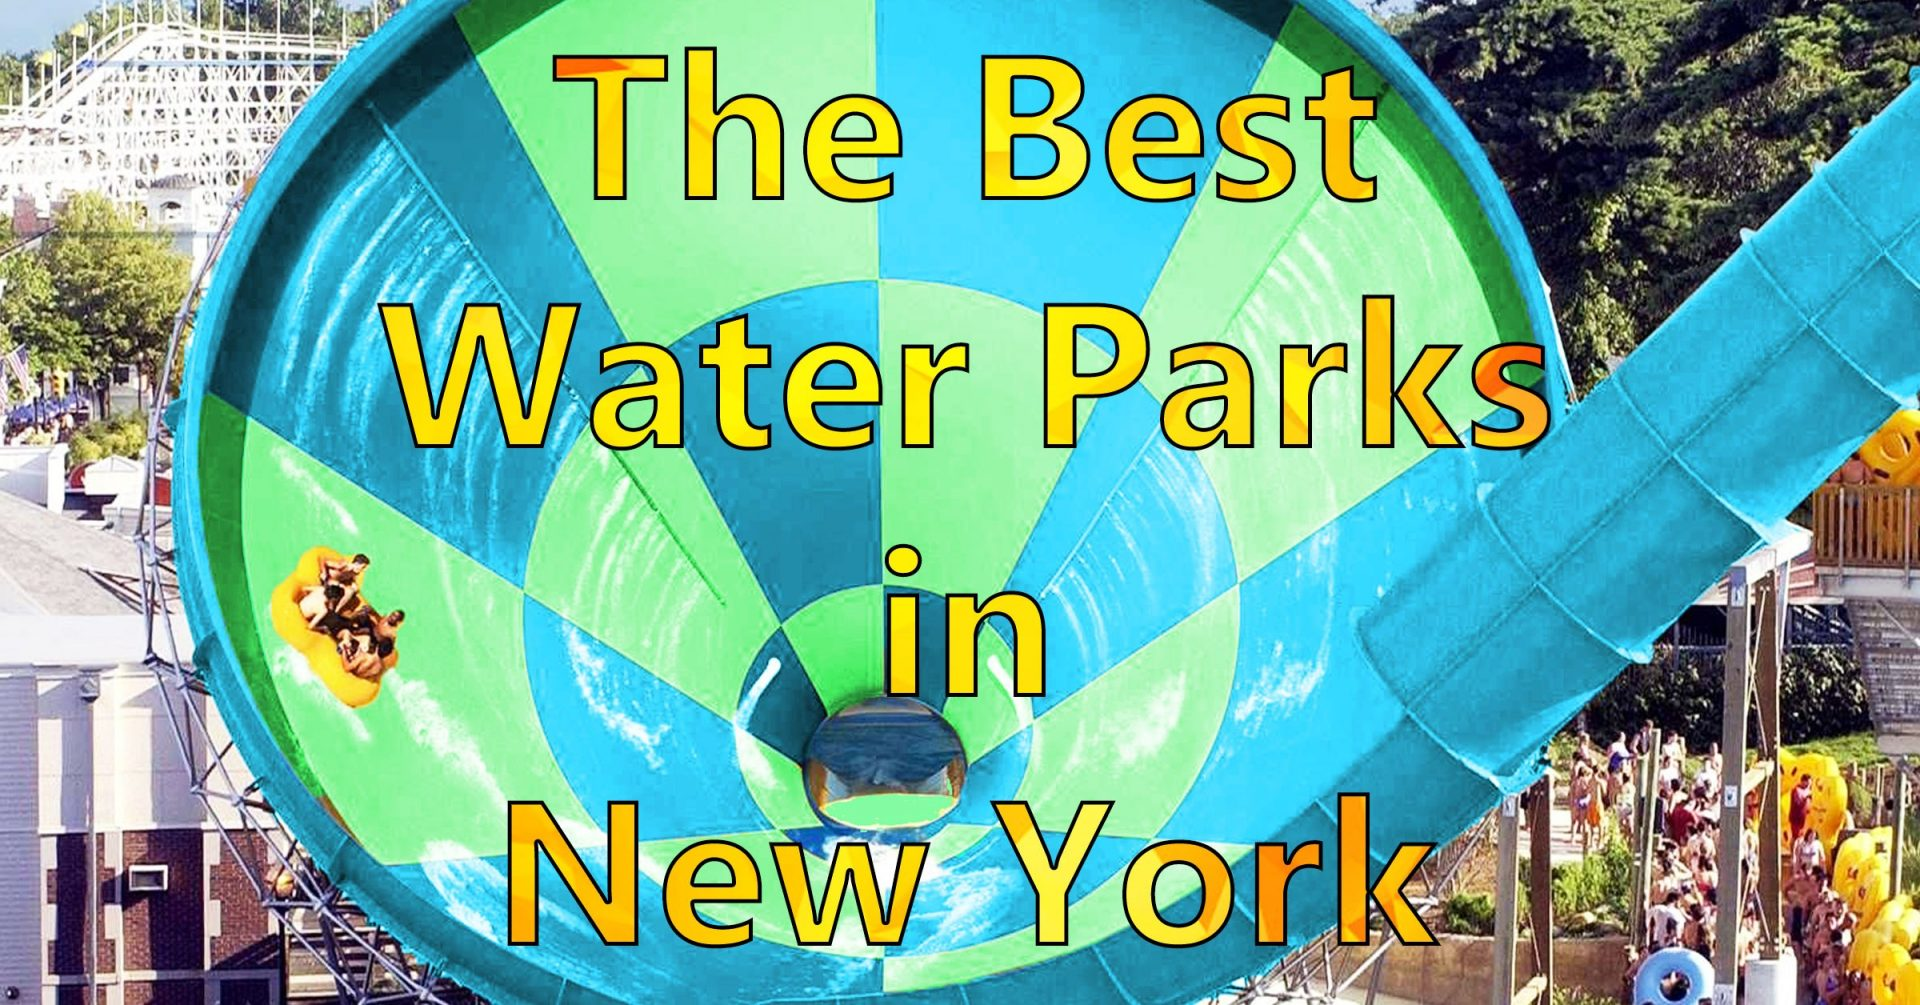 Best Water Parks In The New York